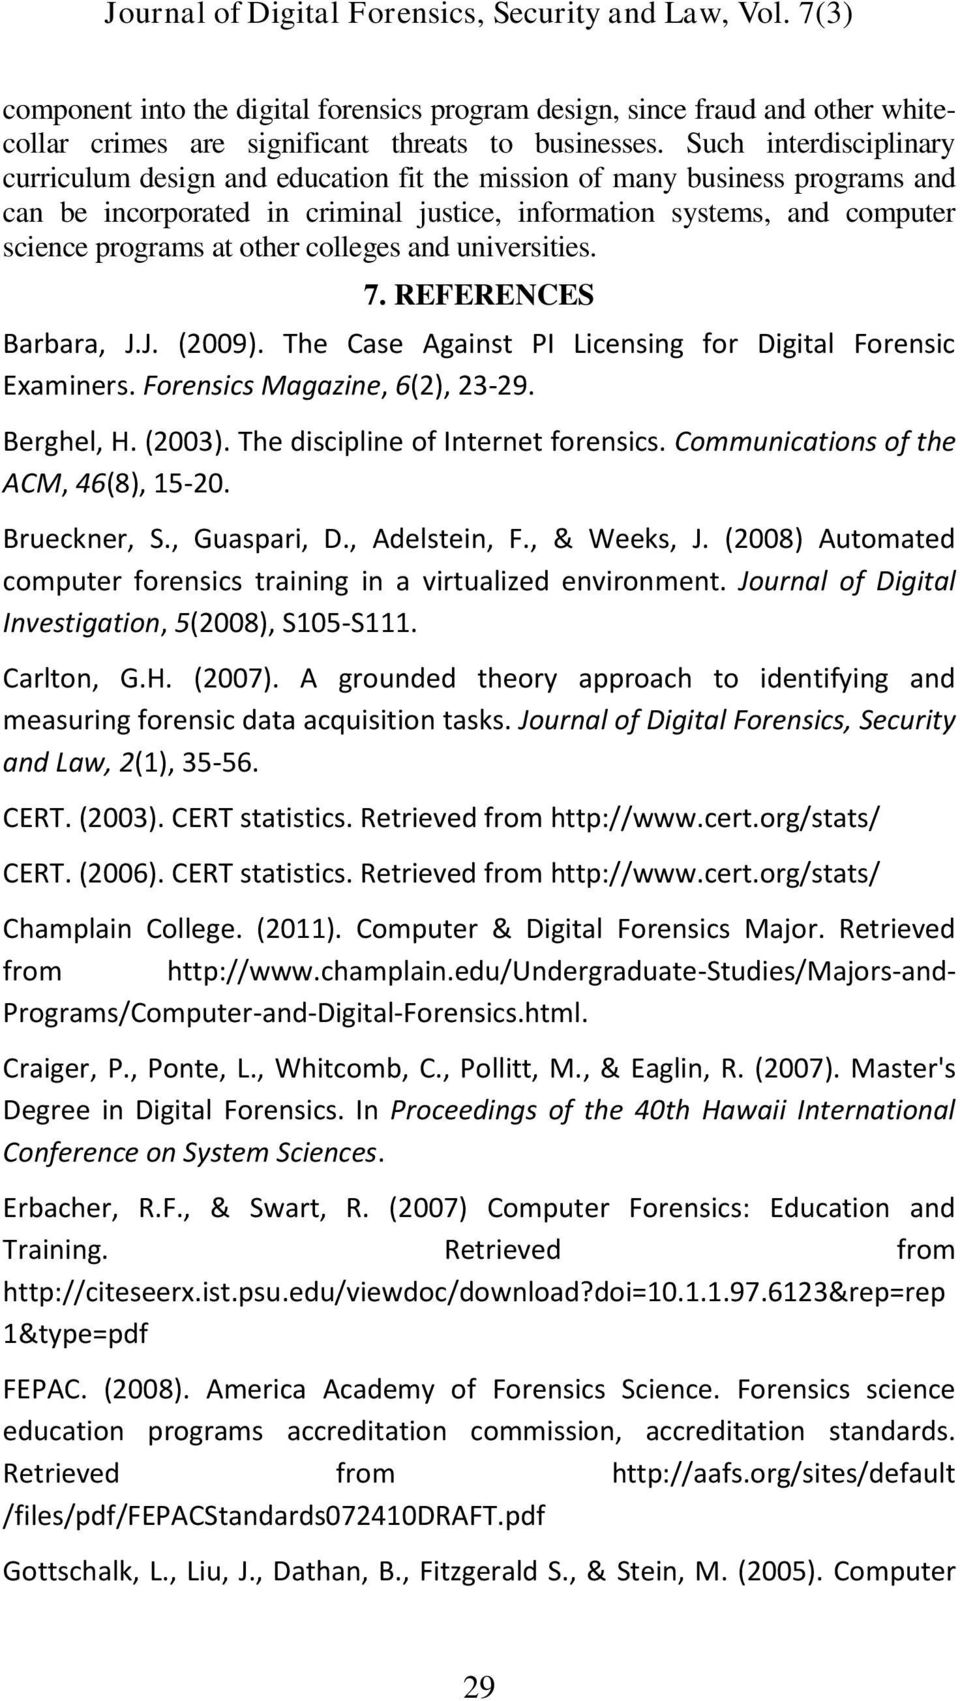 other colleges and universities. 7. REFERENCES Barbara, J.J. (2009). The Case Against PI Licensing for Digital Forensic Examiners. Forensics Magazine, 6(2), 23-29. Berghel, H. (2003).